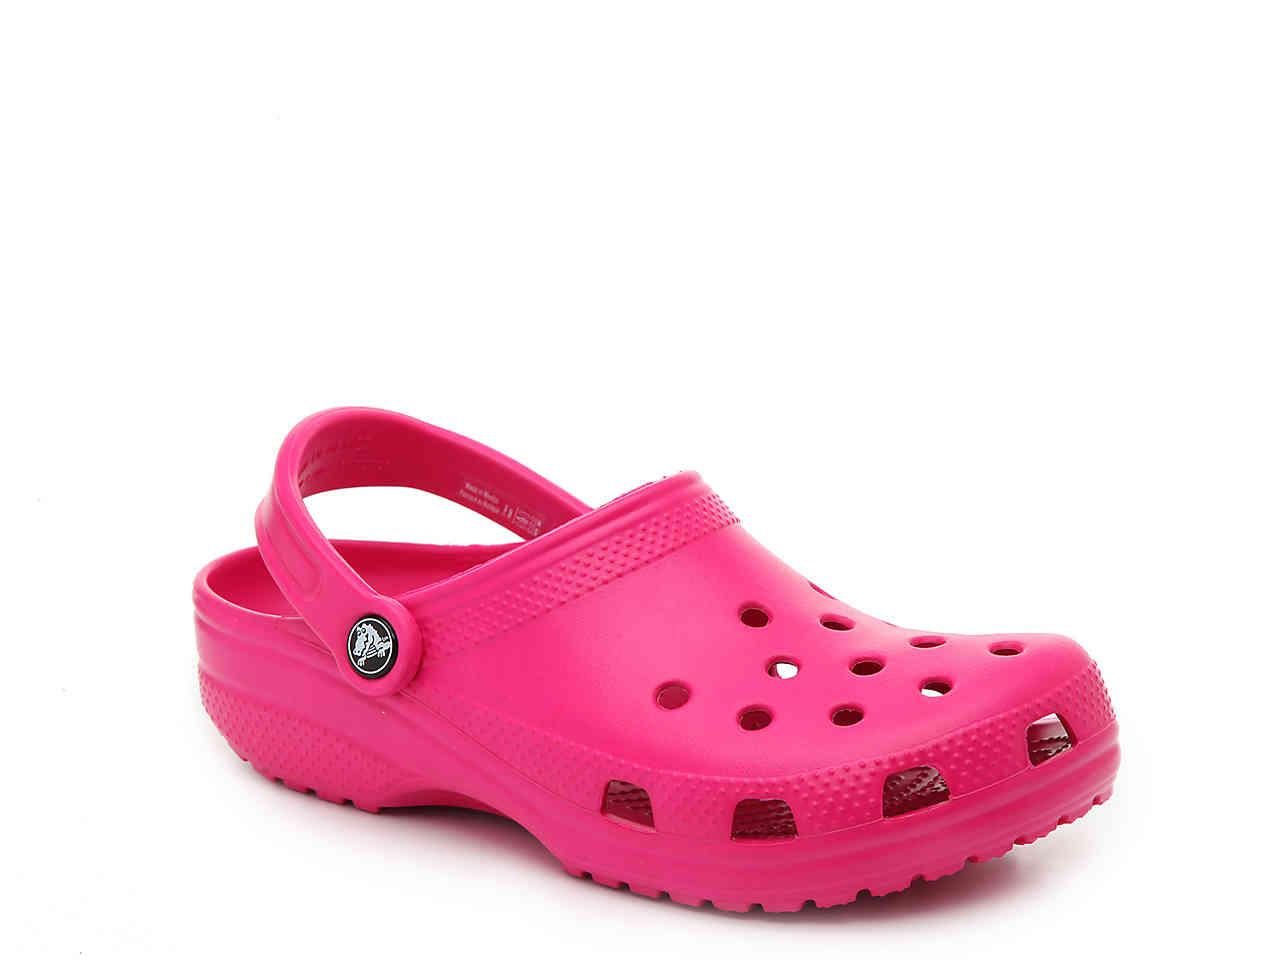 Crocs™ Synthetic Classic Clog in Hot